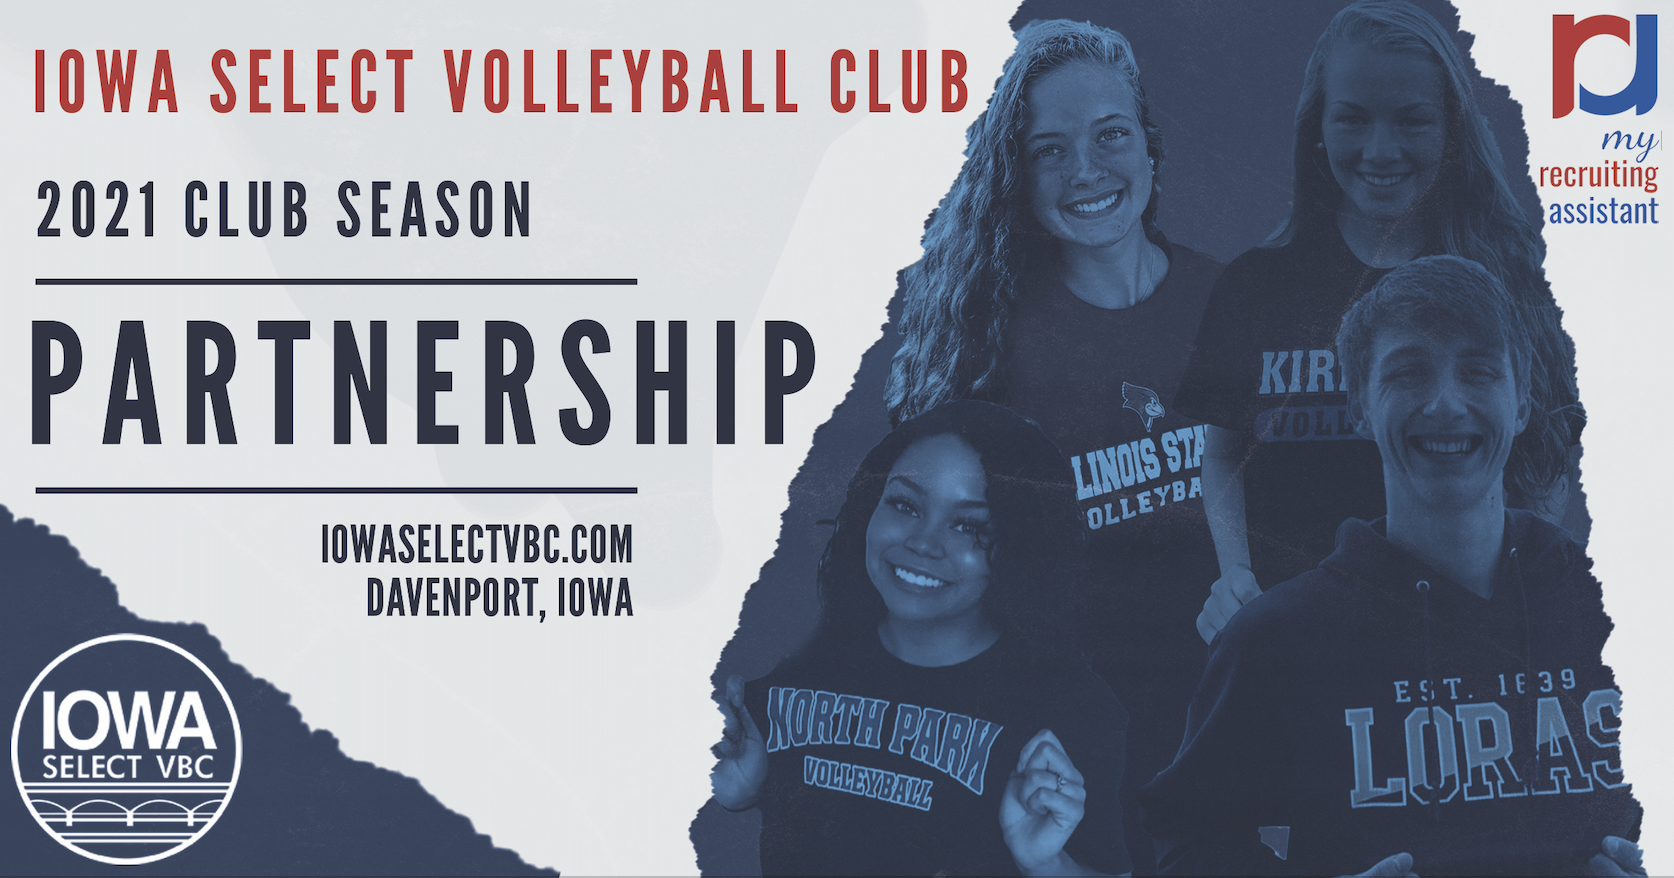 Recruiting Coordinator For 2021 Season At Iowa Select Volleyball Club In 2020 Volleyball Clubs Recruitment Volleyball